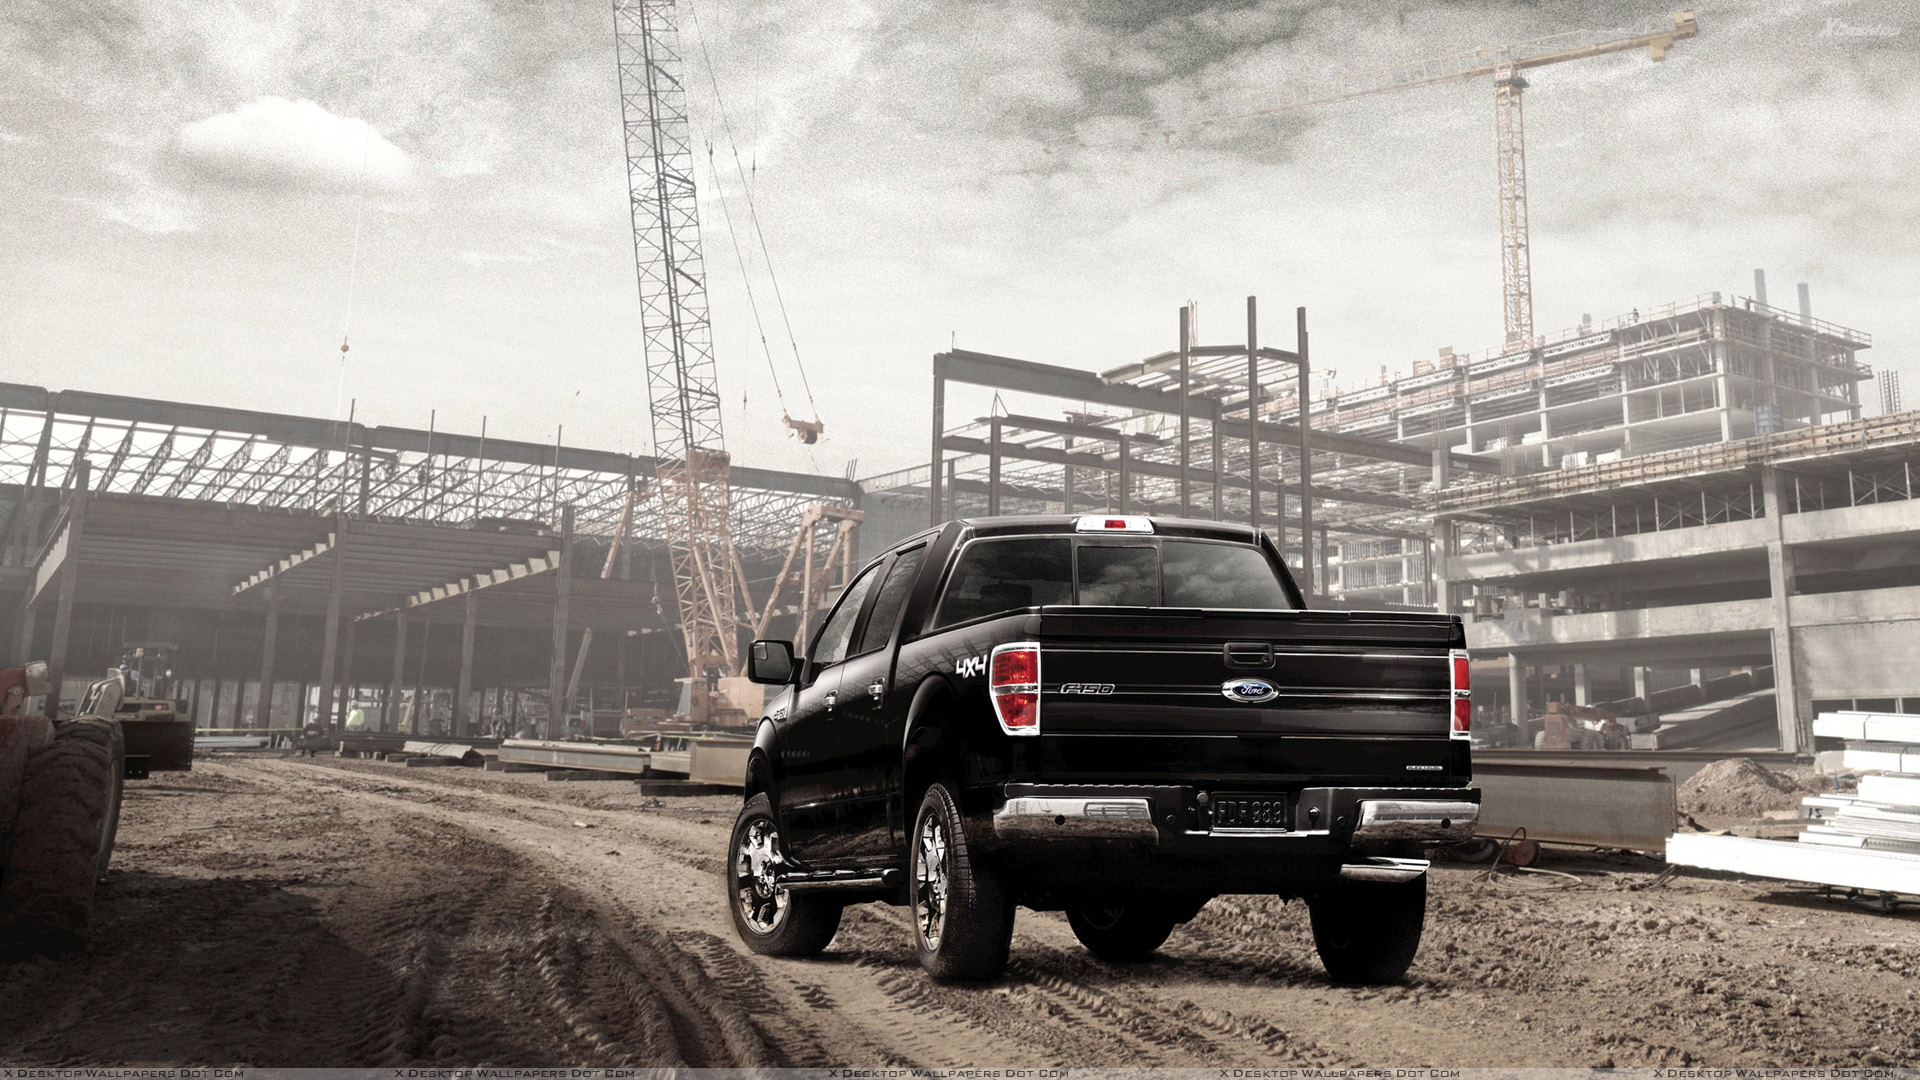 Ford F 150 Wallpapers Photos Images In Hd